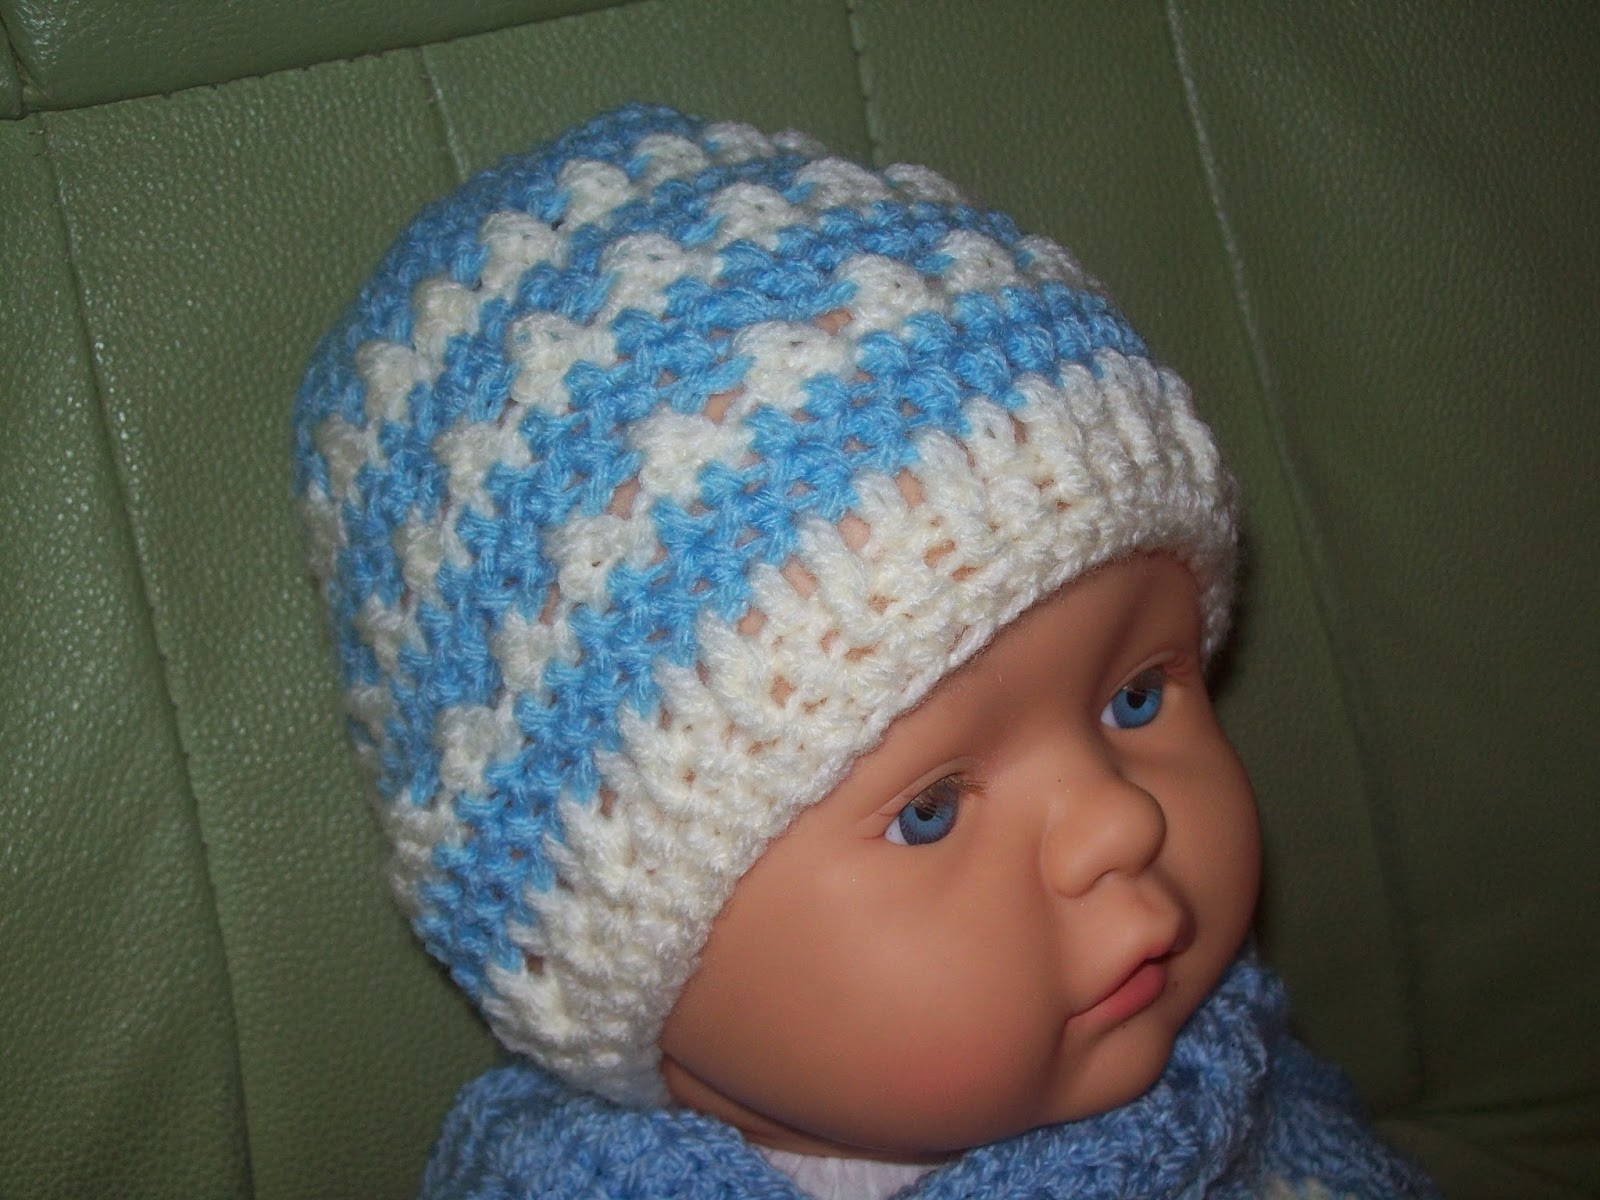 Crochet Baby Beanie New Free Crochet Patterns by Cats Rockin Crochet Of Beautiful 46 Pictures Crochet Baby Beanie